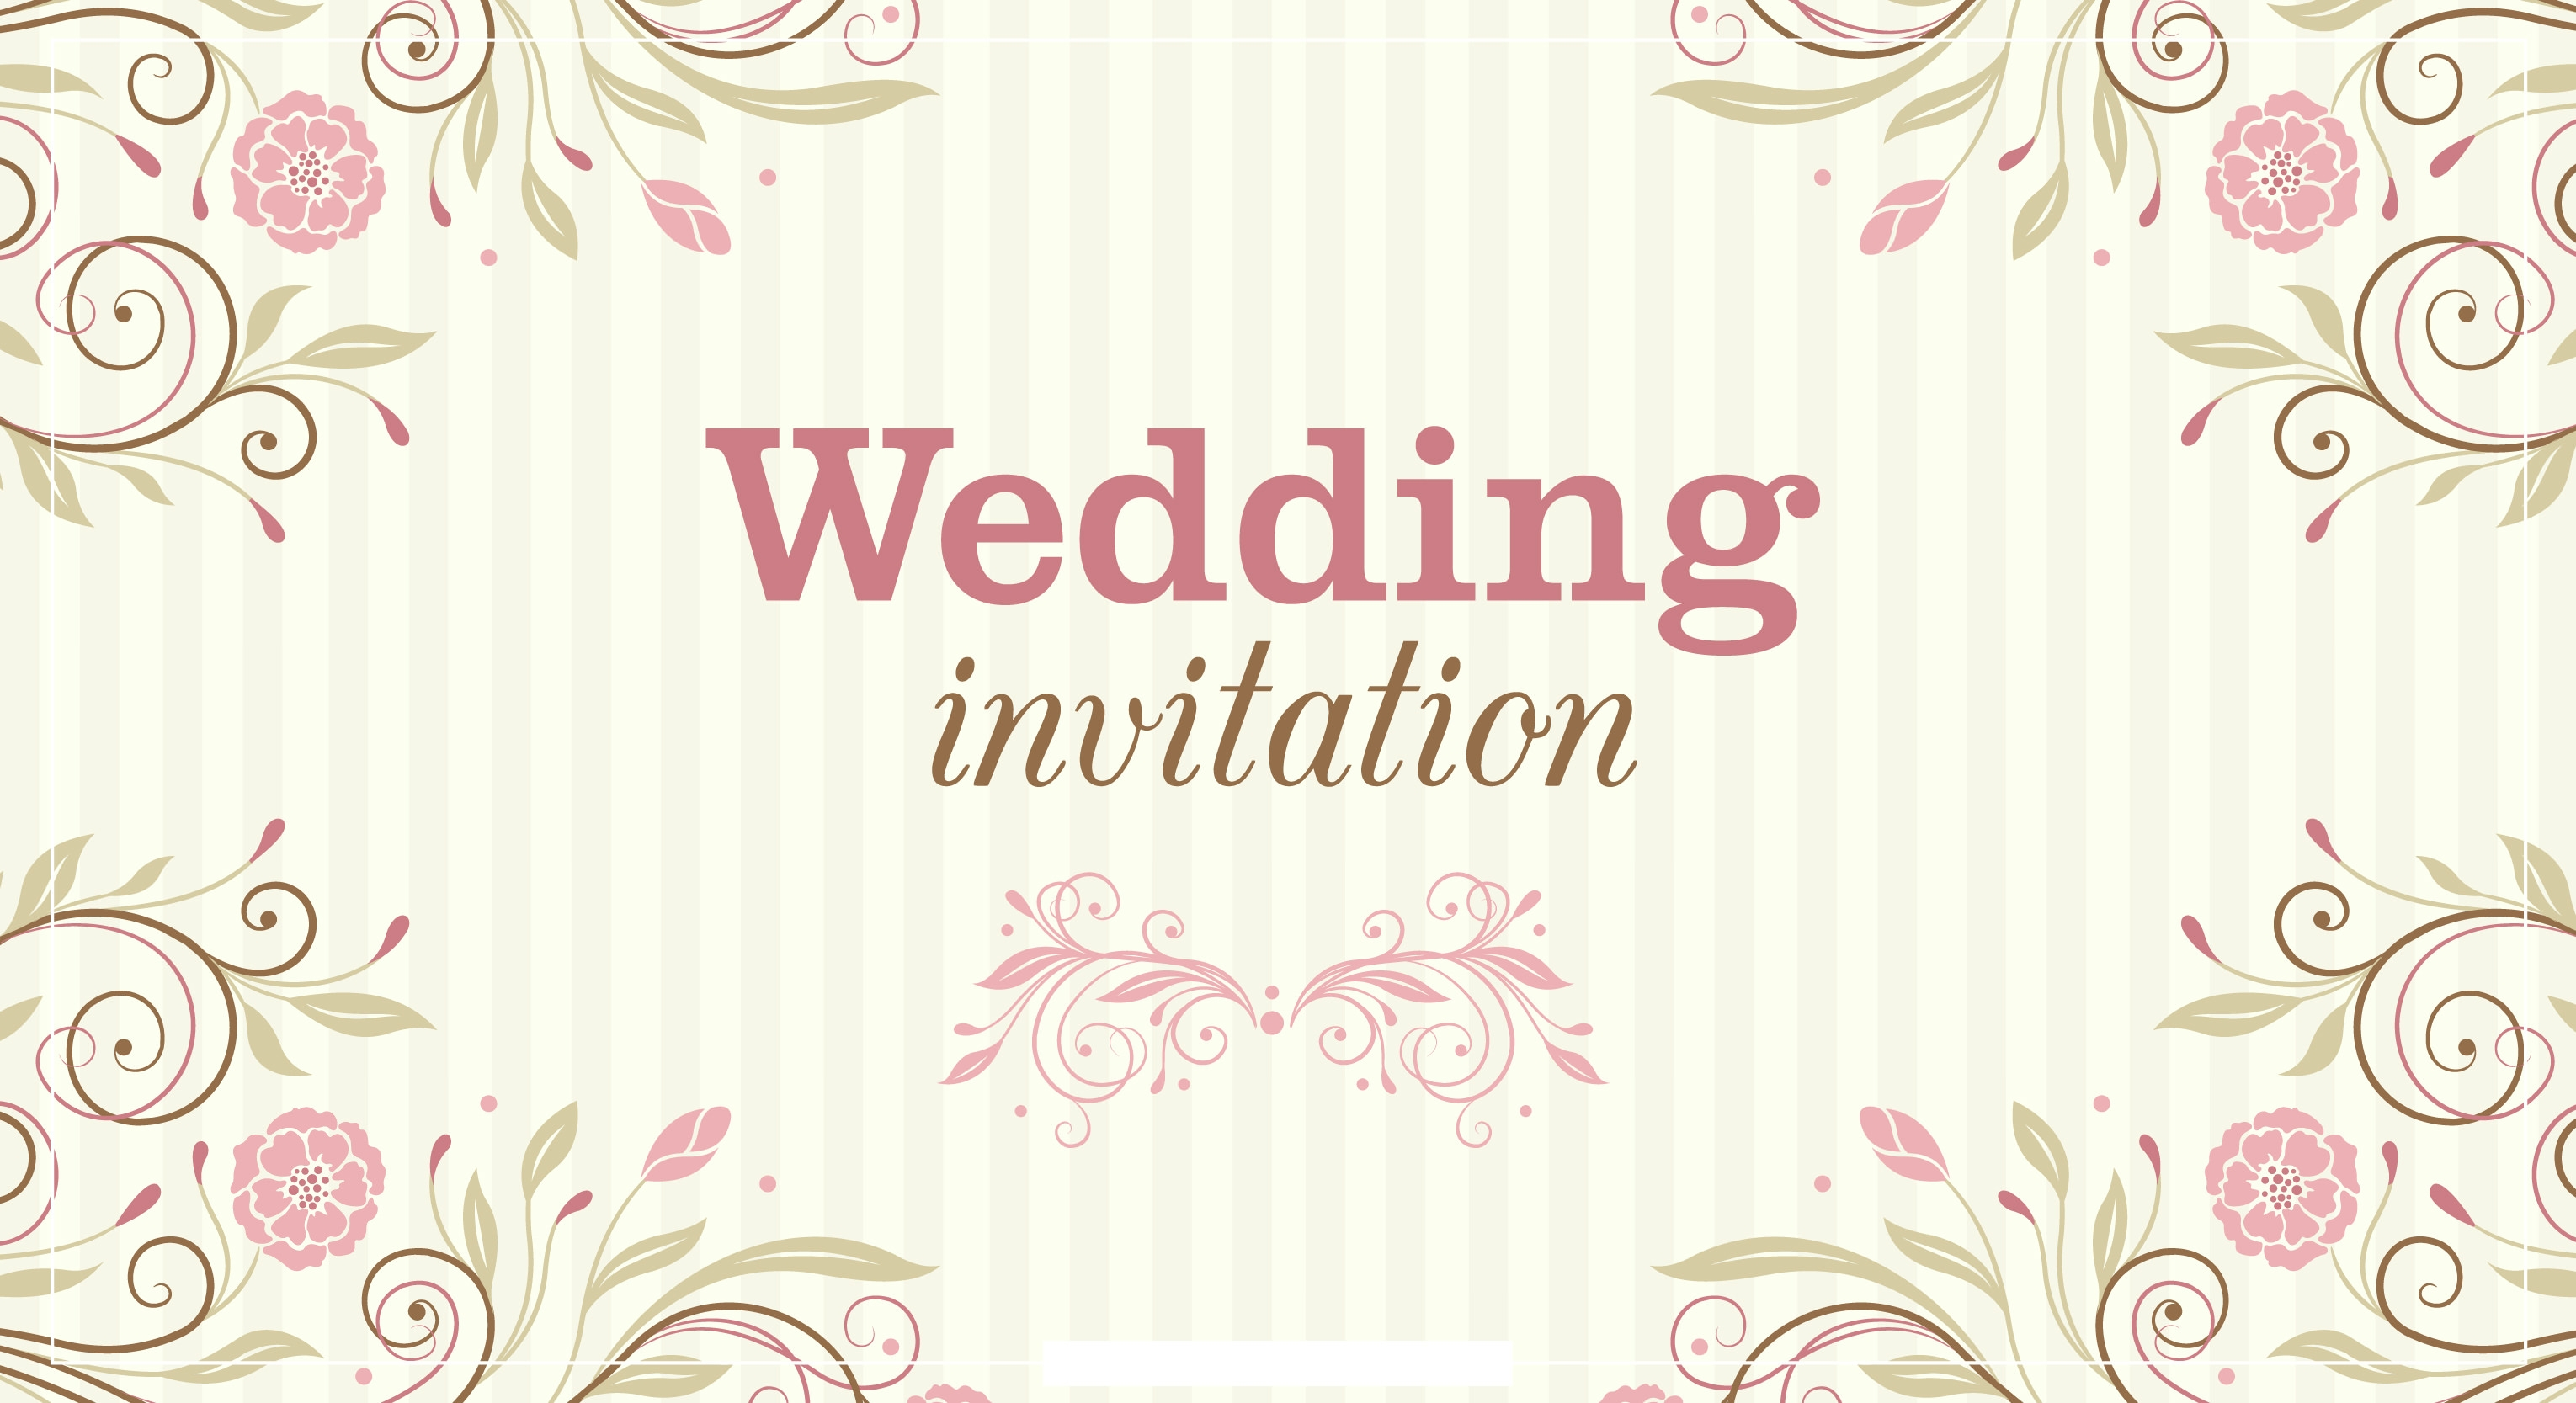 High Quality Beautiful Floral Wedding Invitation Background